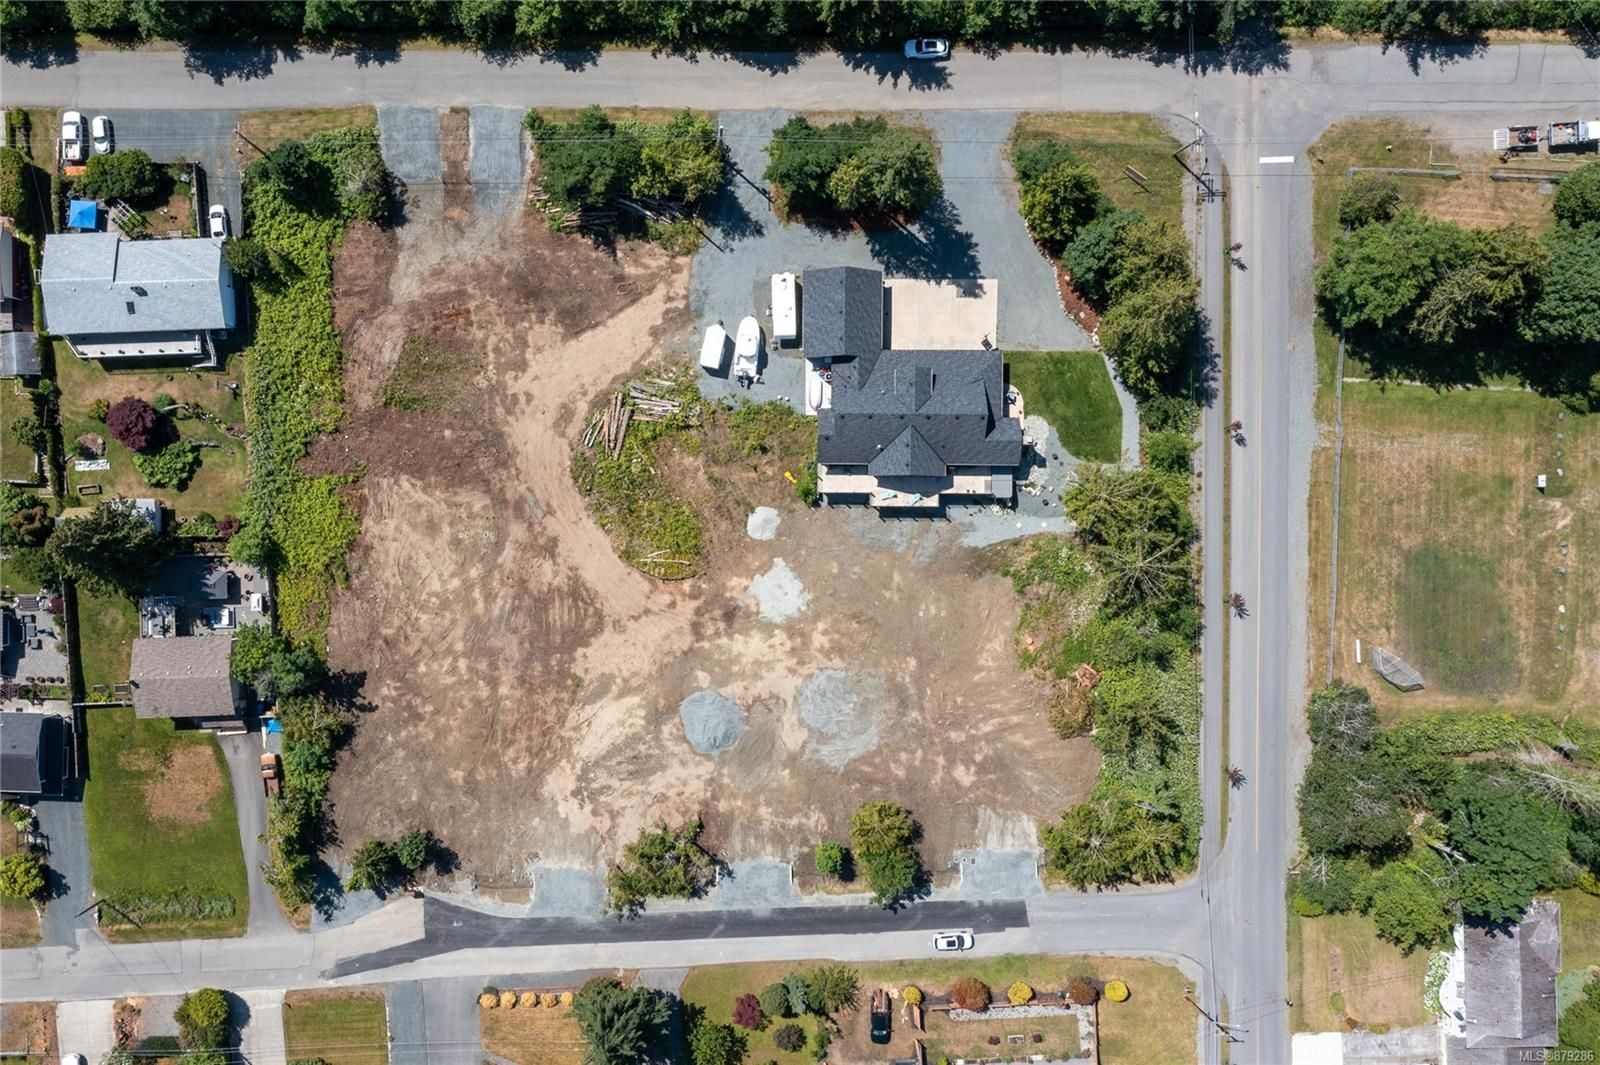 Main Photo: F E Harby Rd in : Na Lower Lantzville Land for sale (Nanaimo)  : MLS®# 879286